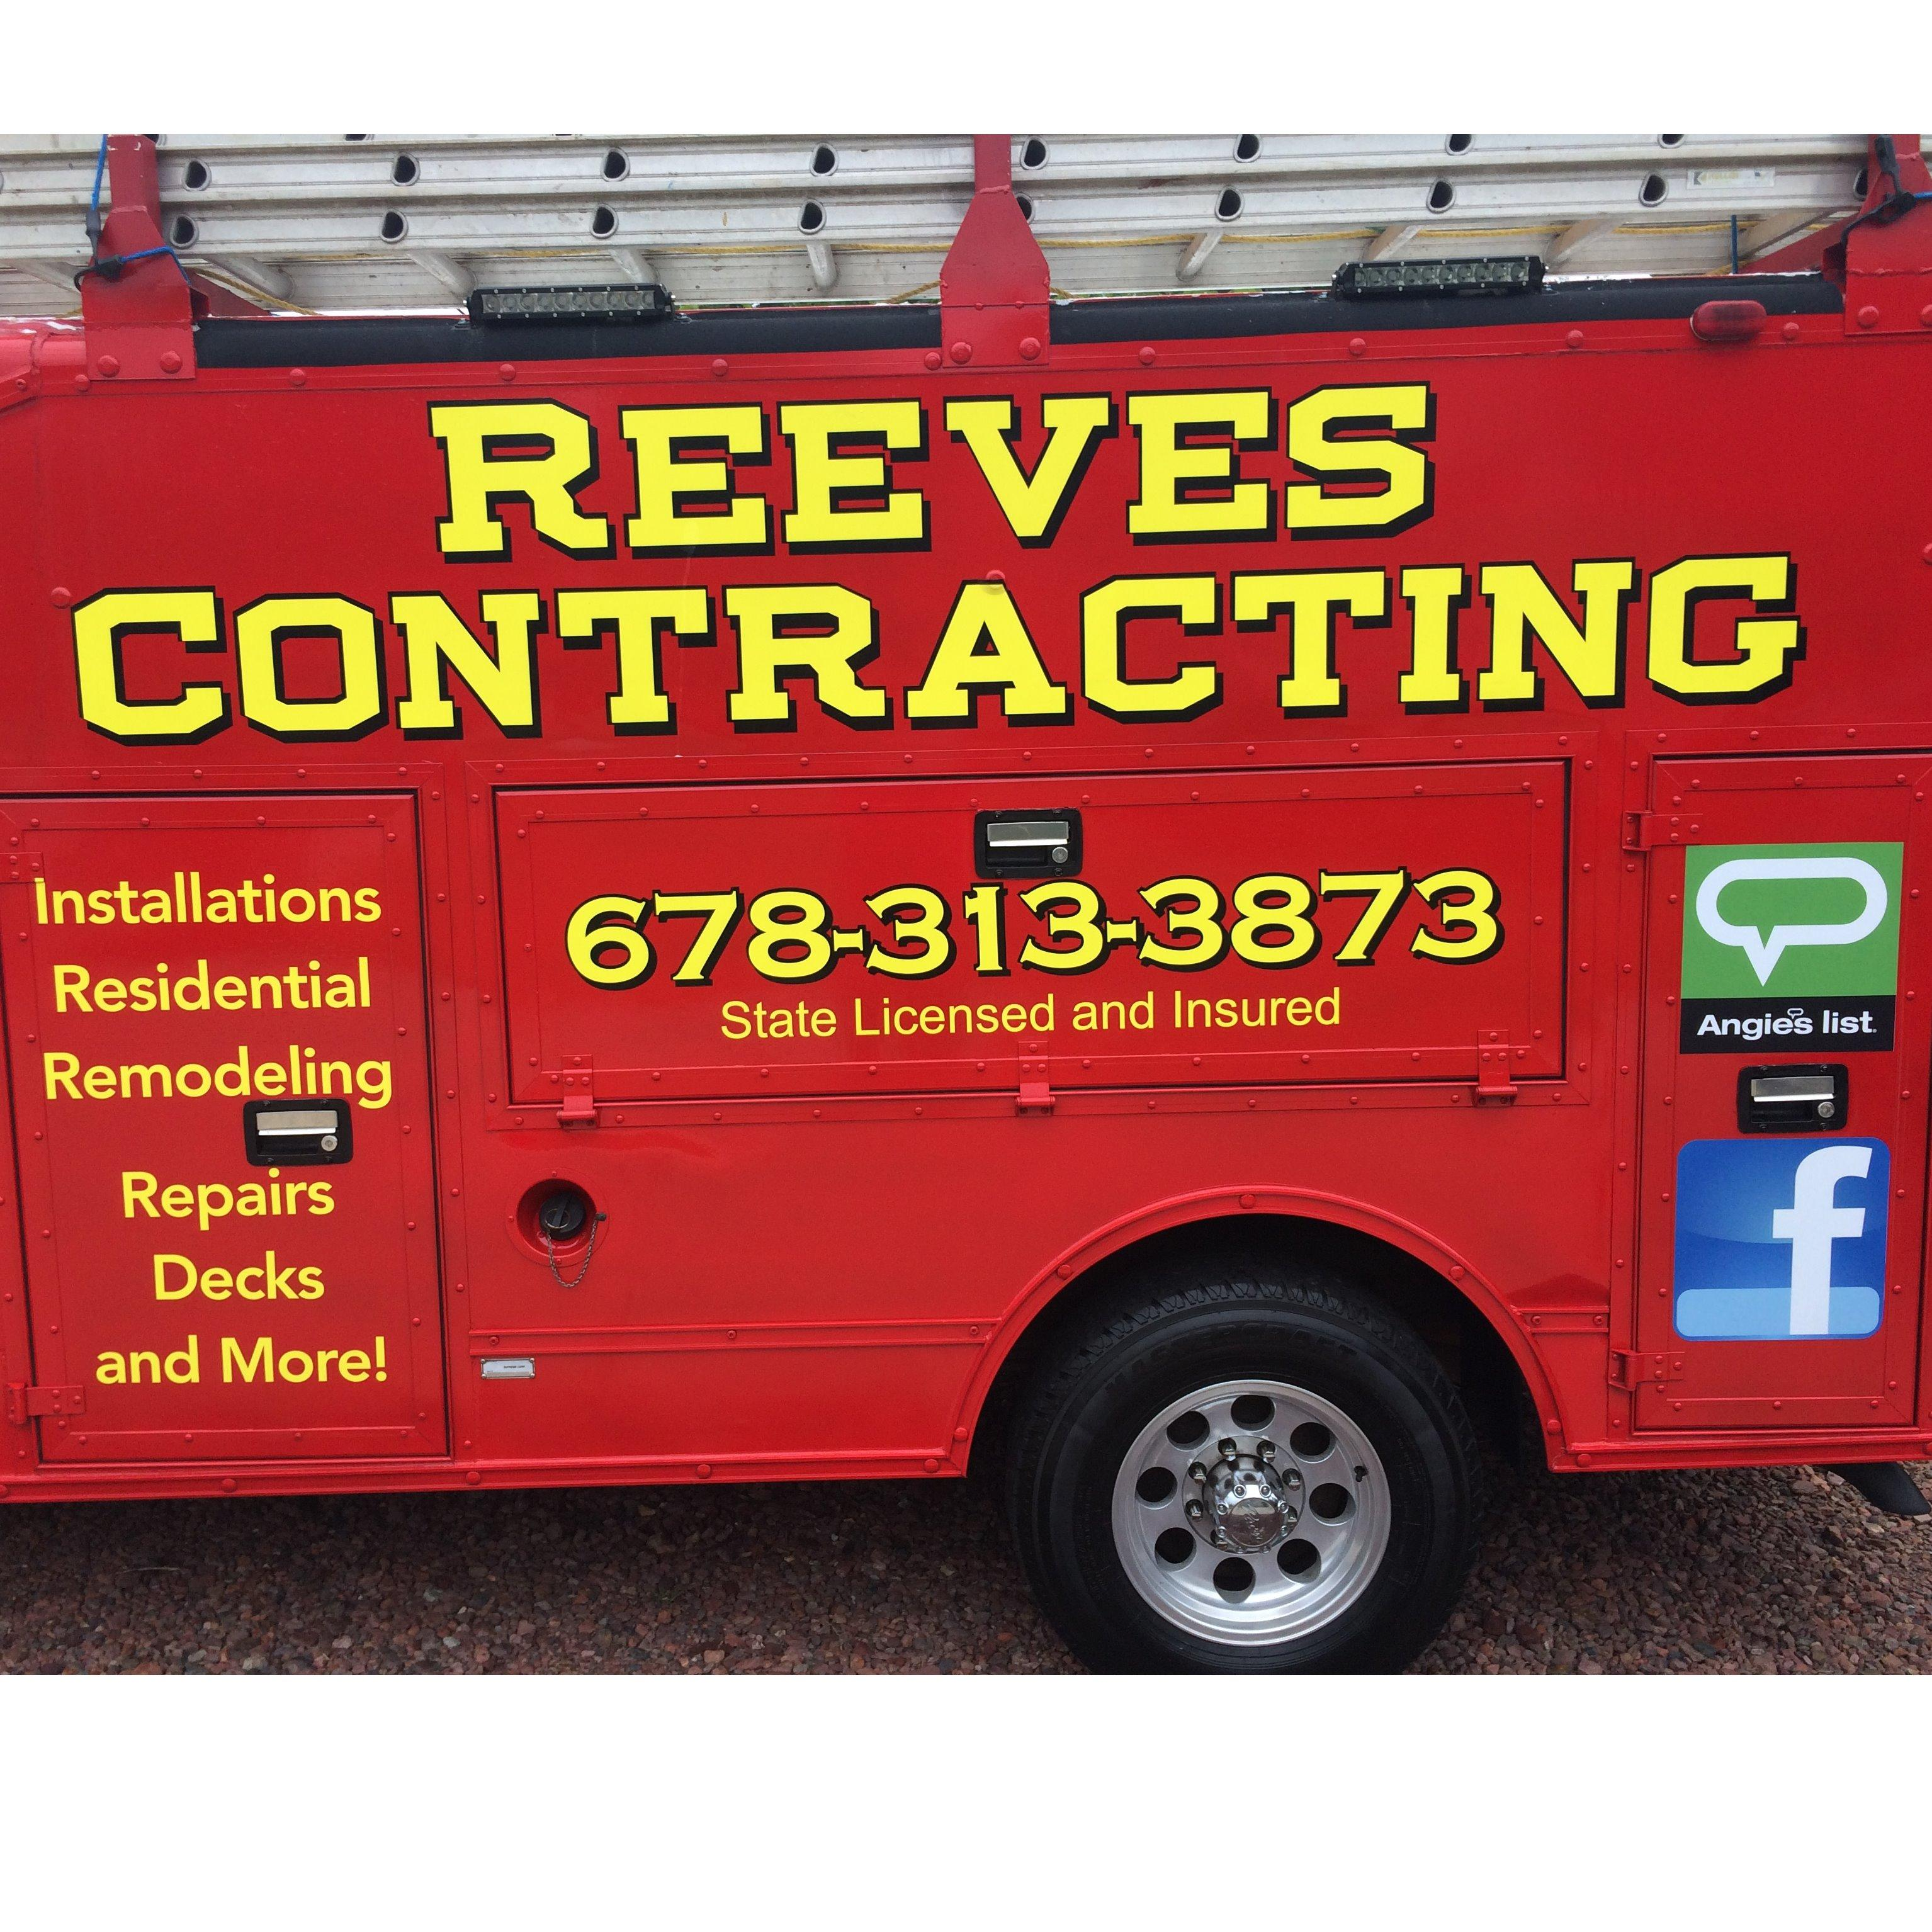 Reeves Contracting & Professional Pressure Washing